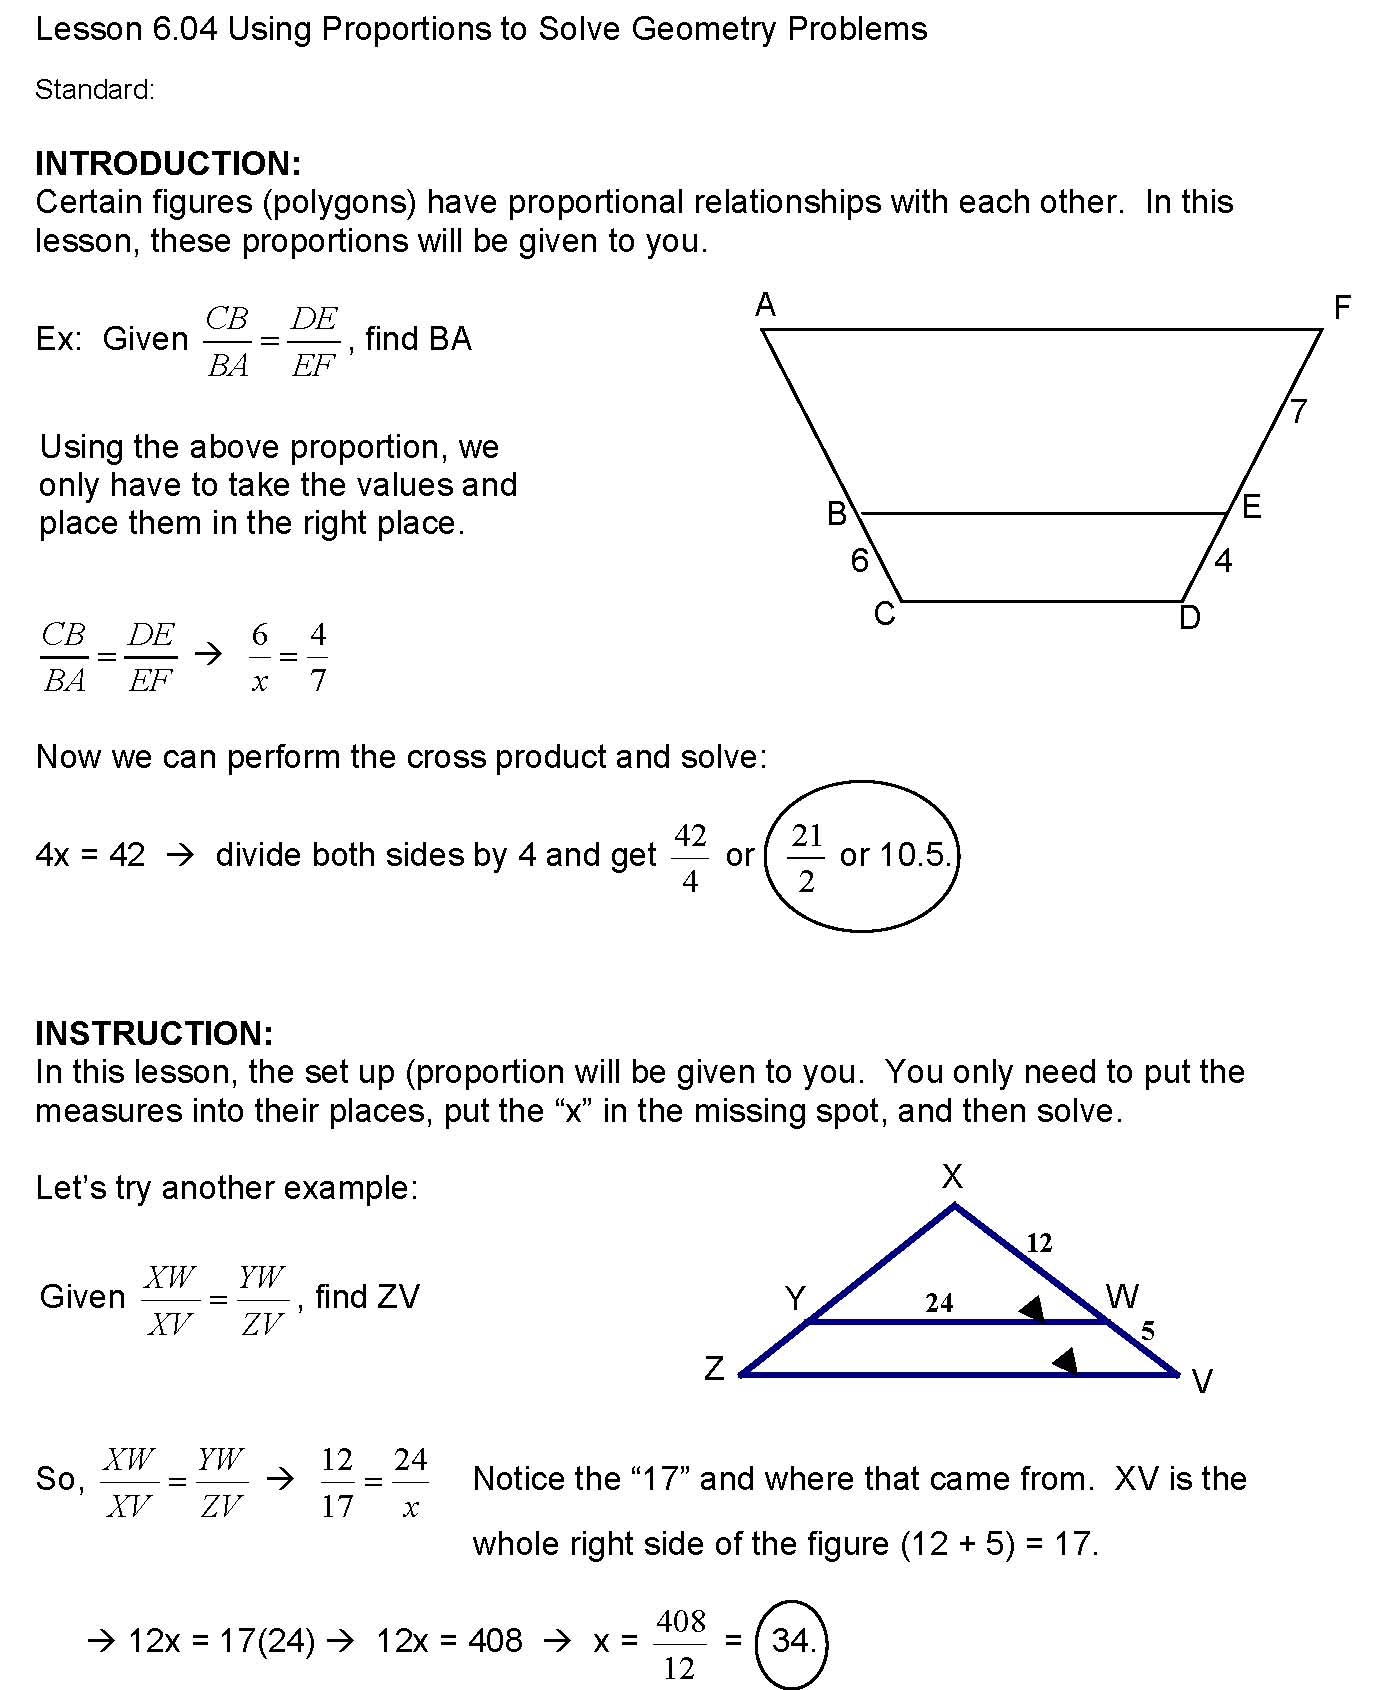 hight resolution of cosgeometry / Lesson 6-04 Using Proportions to Solve Geometry Problems